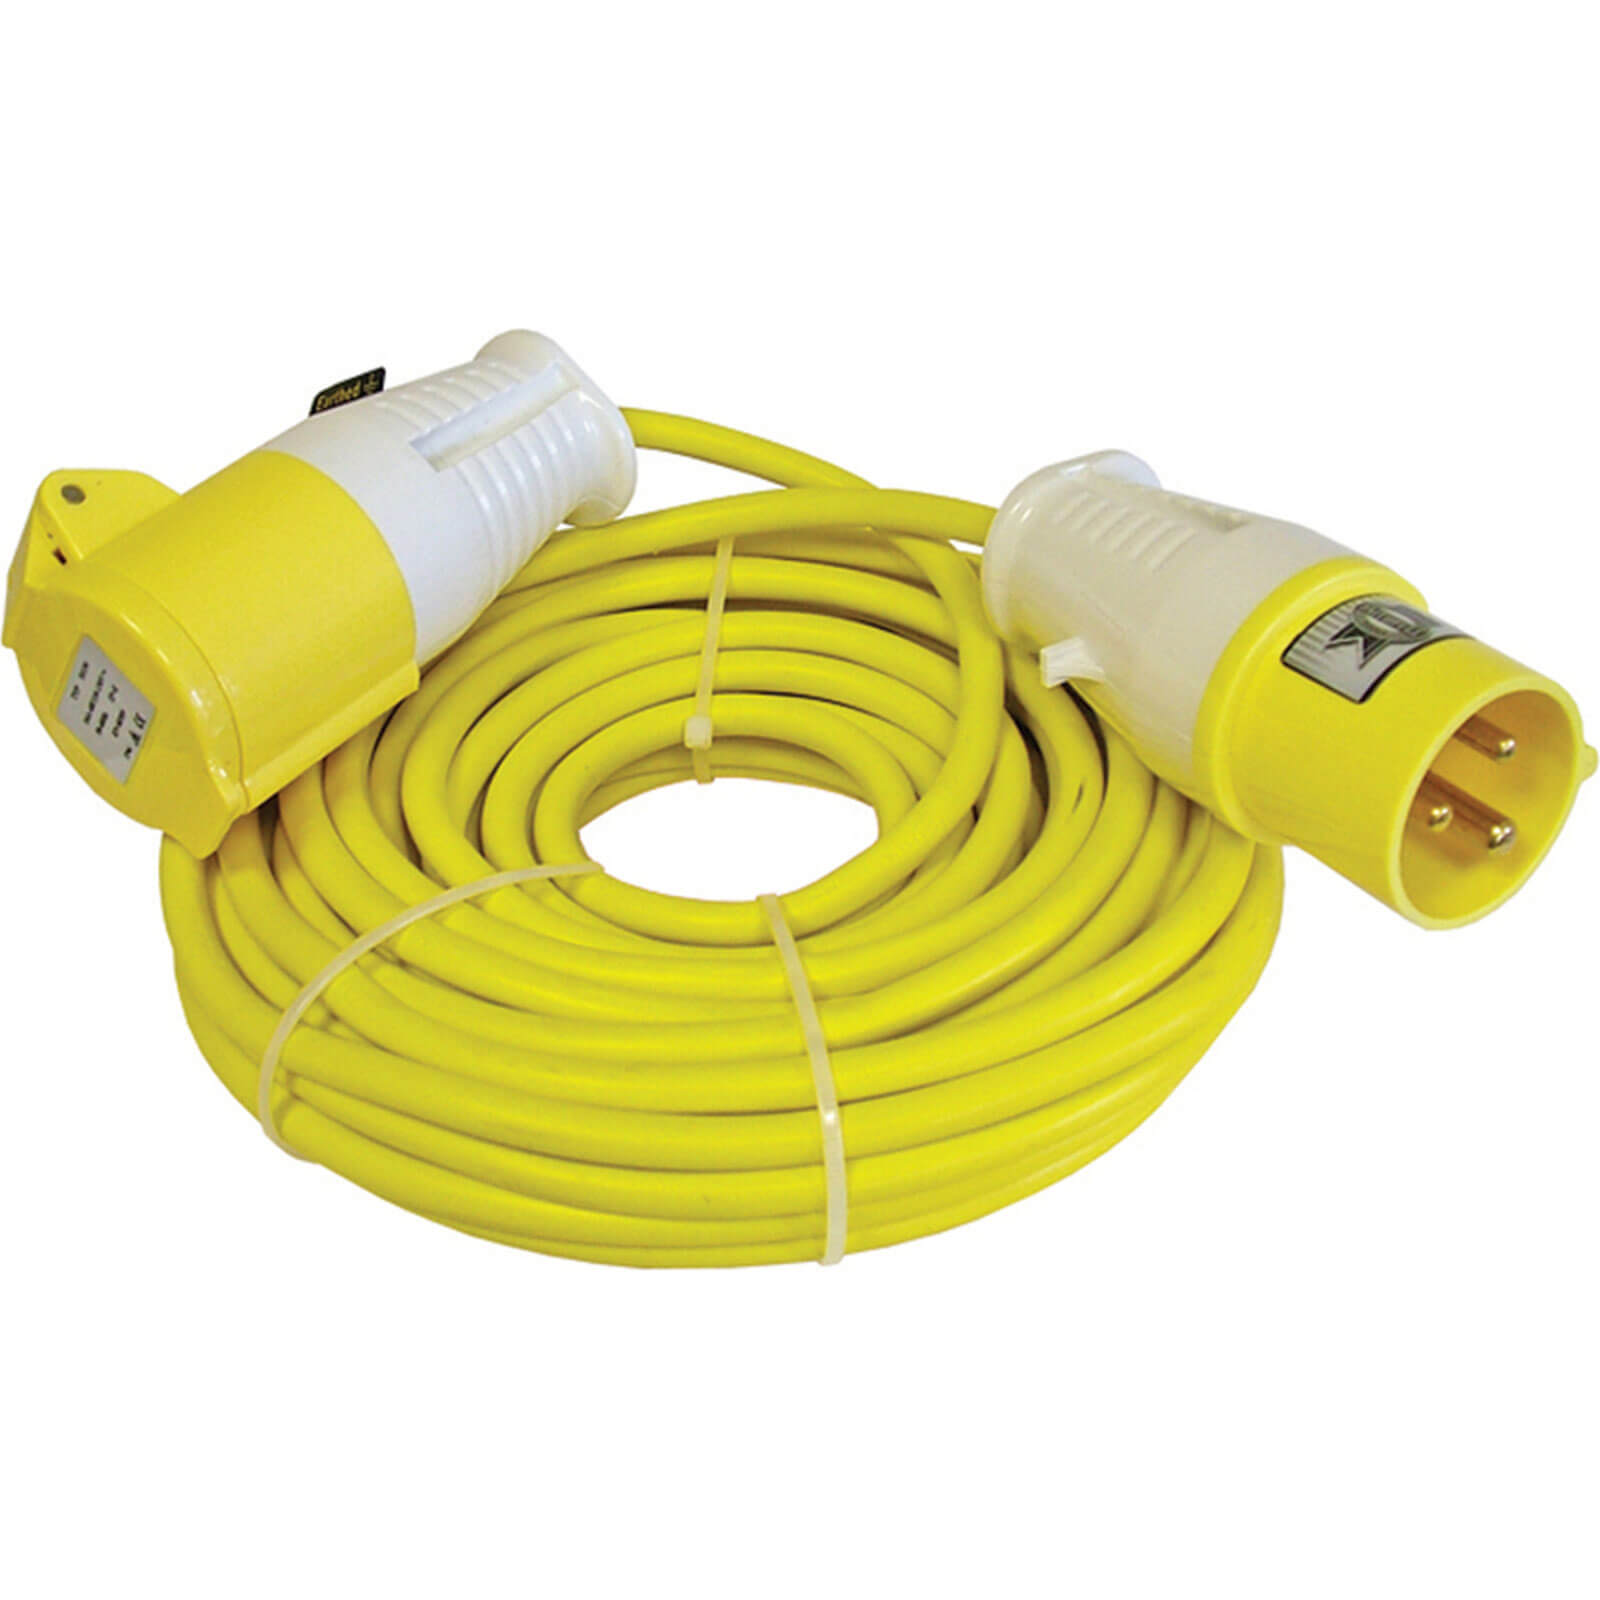 Extension Trailing Lead 14m 16amp 110v Yellow 2.5mm Cable